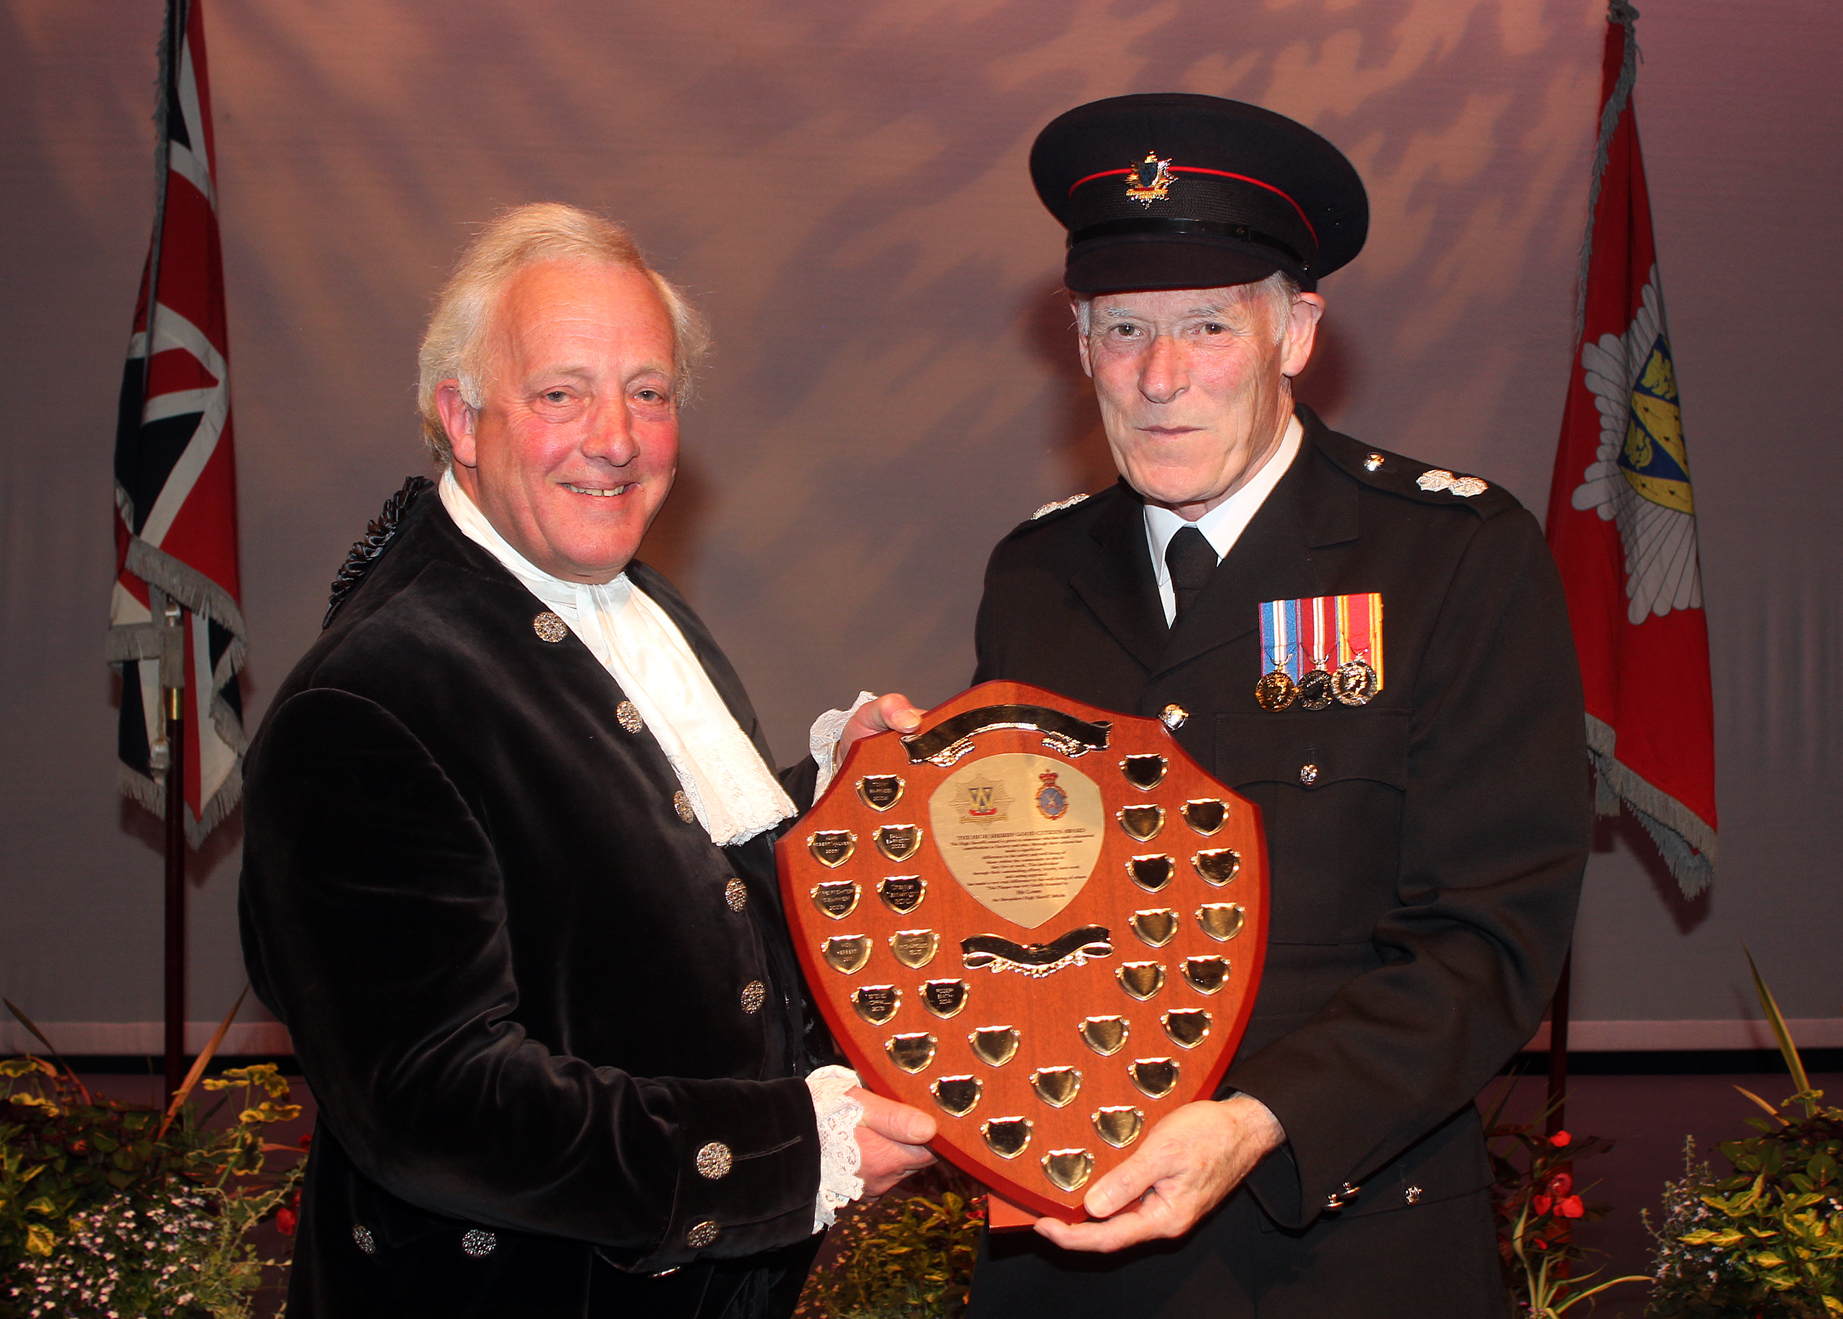 Shropshire High Sheriff Roger Bland presents Roger Smith with his award